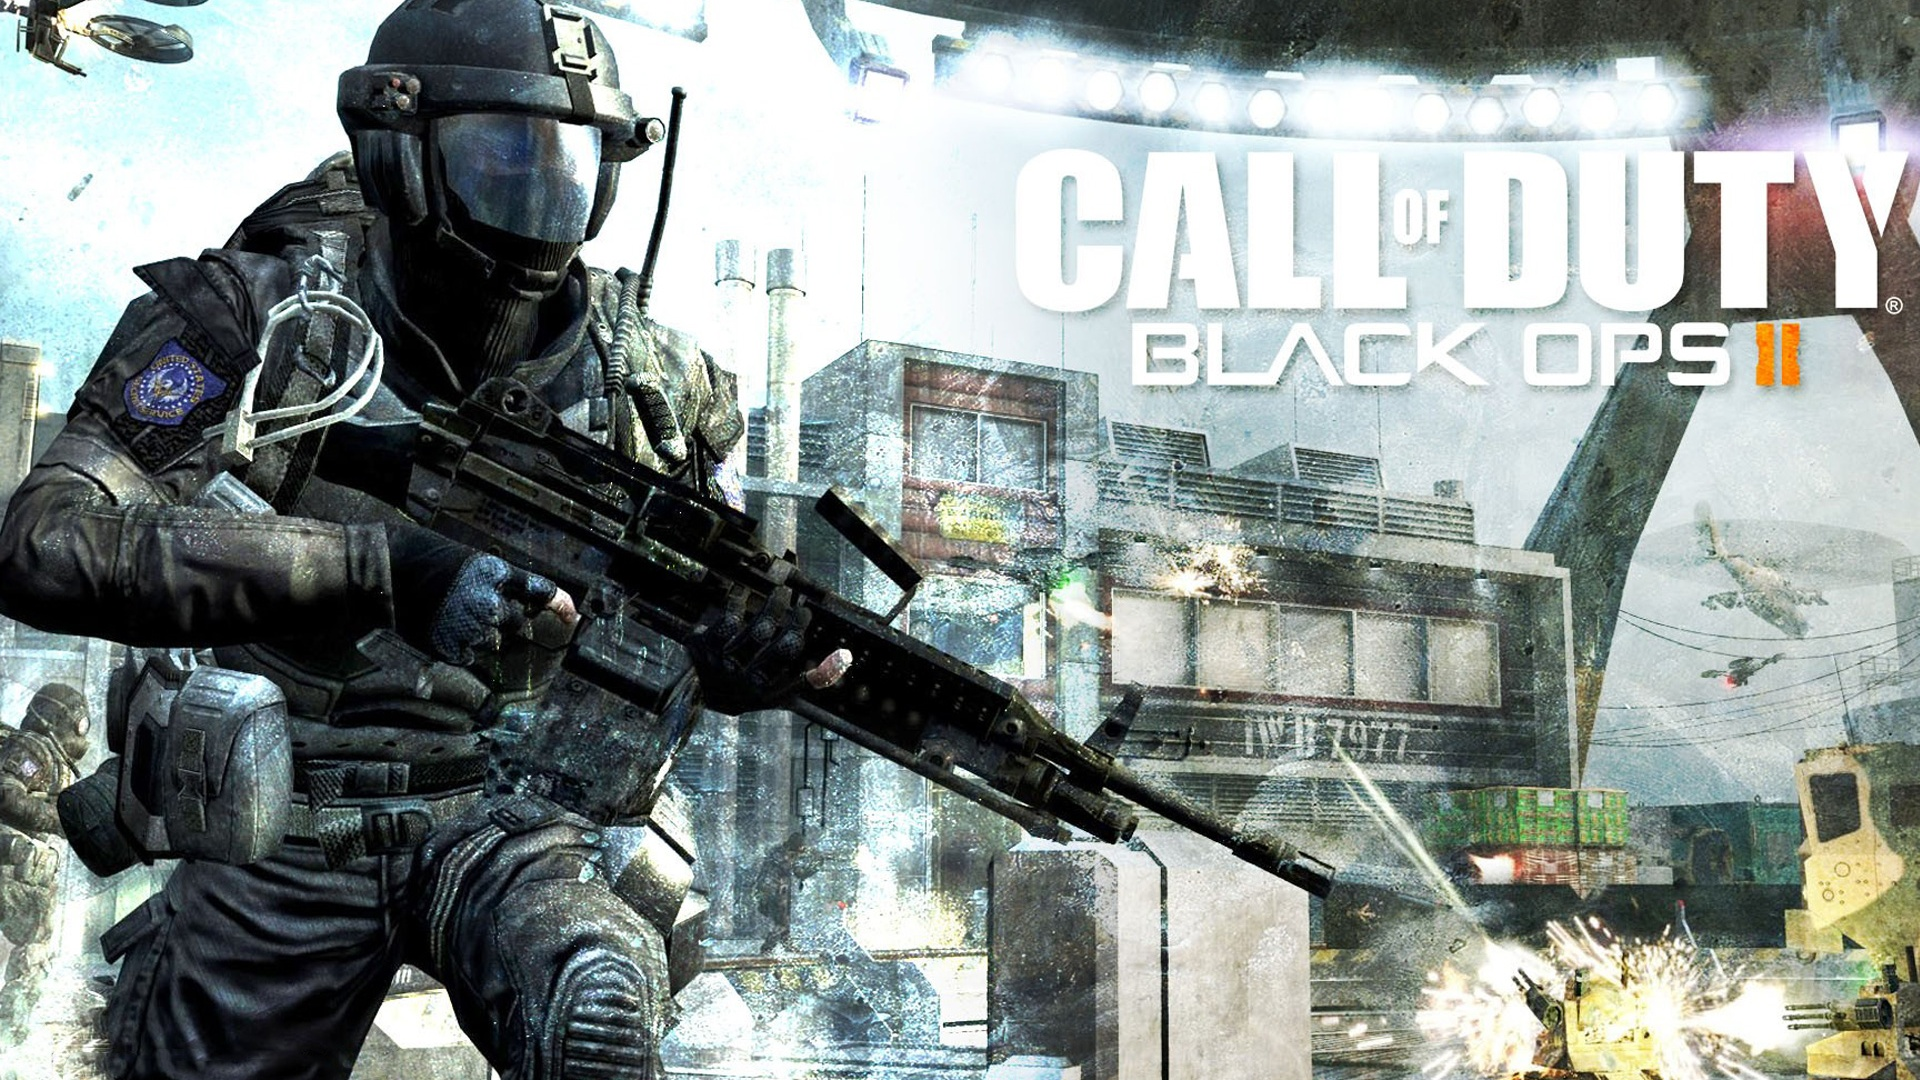 Wallpaper 2012 call of duty black ops ii hd 1920x1200 hd picture image widescreen voltagebd Image collections